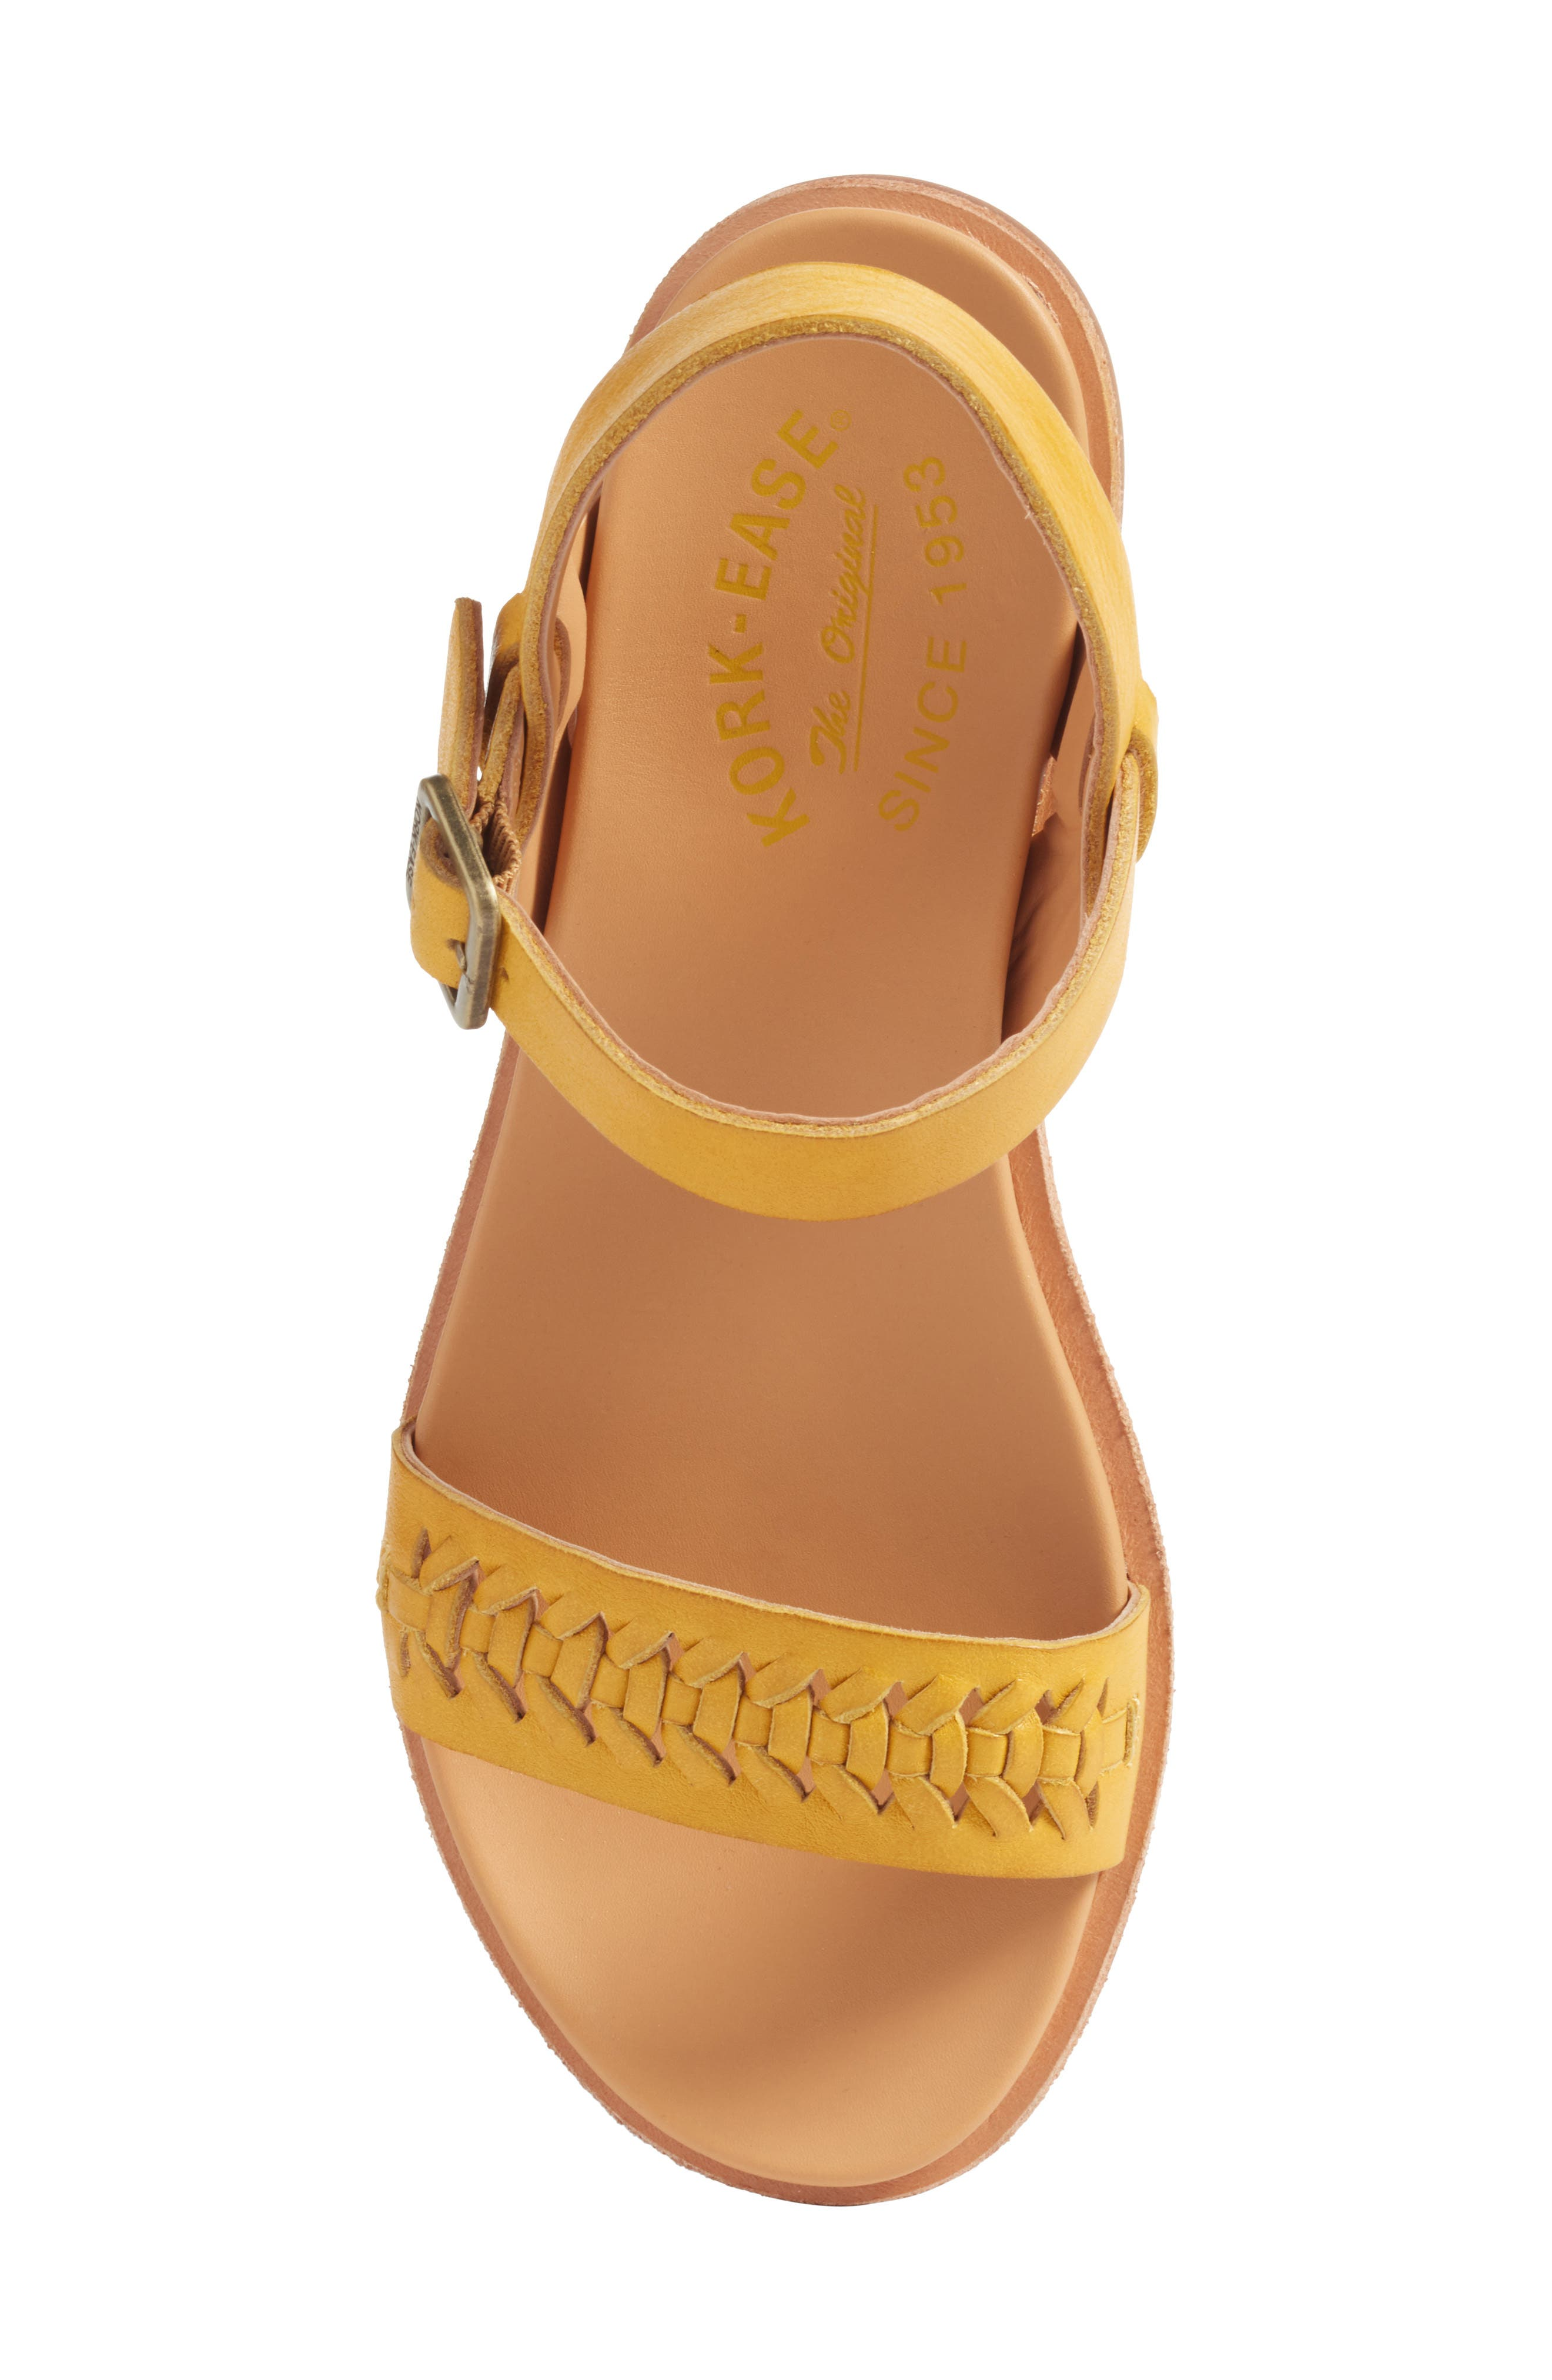 Yucca Braid Sandal,                             Alternate thumbnail 5, color,                             Yellow Leather